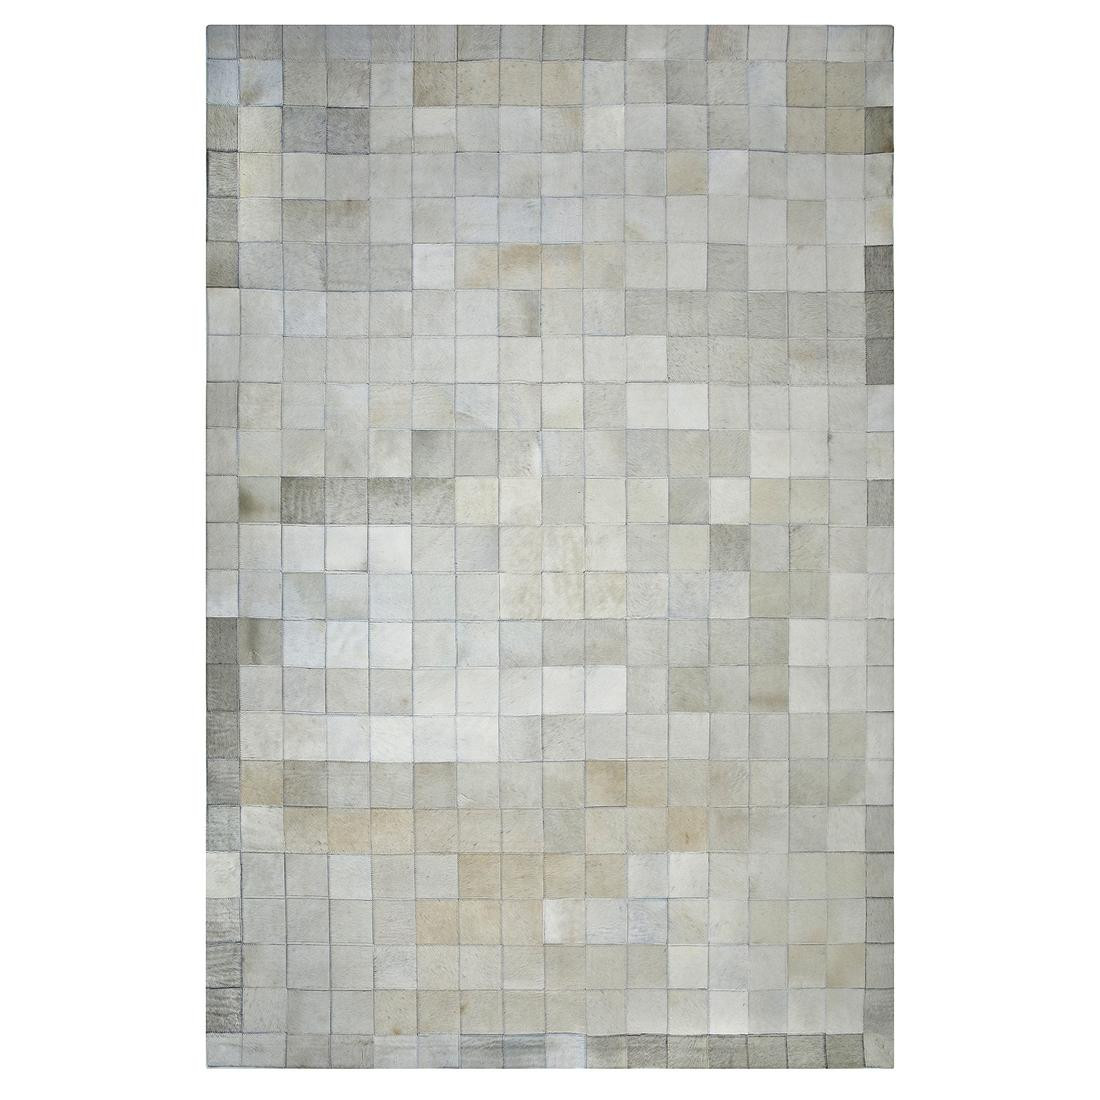 TAPETE COURO NATURAL - 2,00x3,00